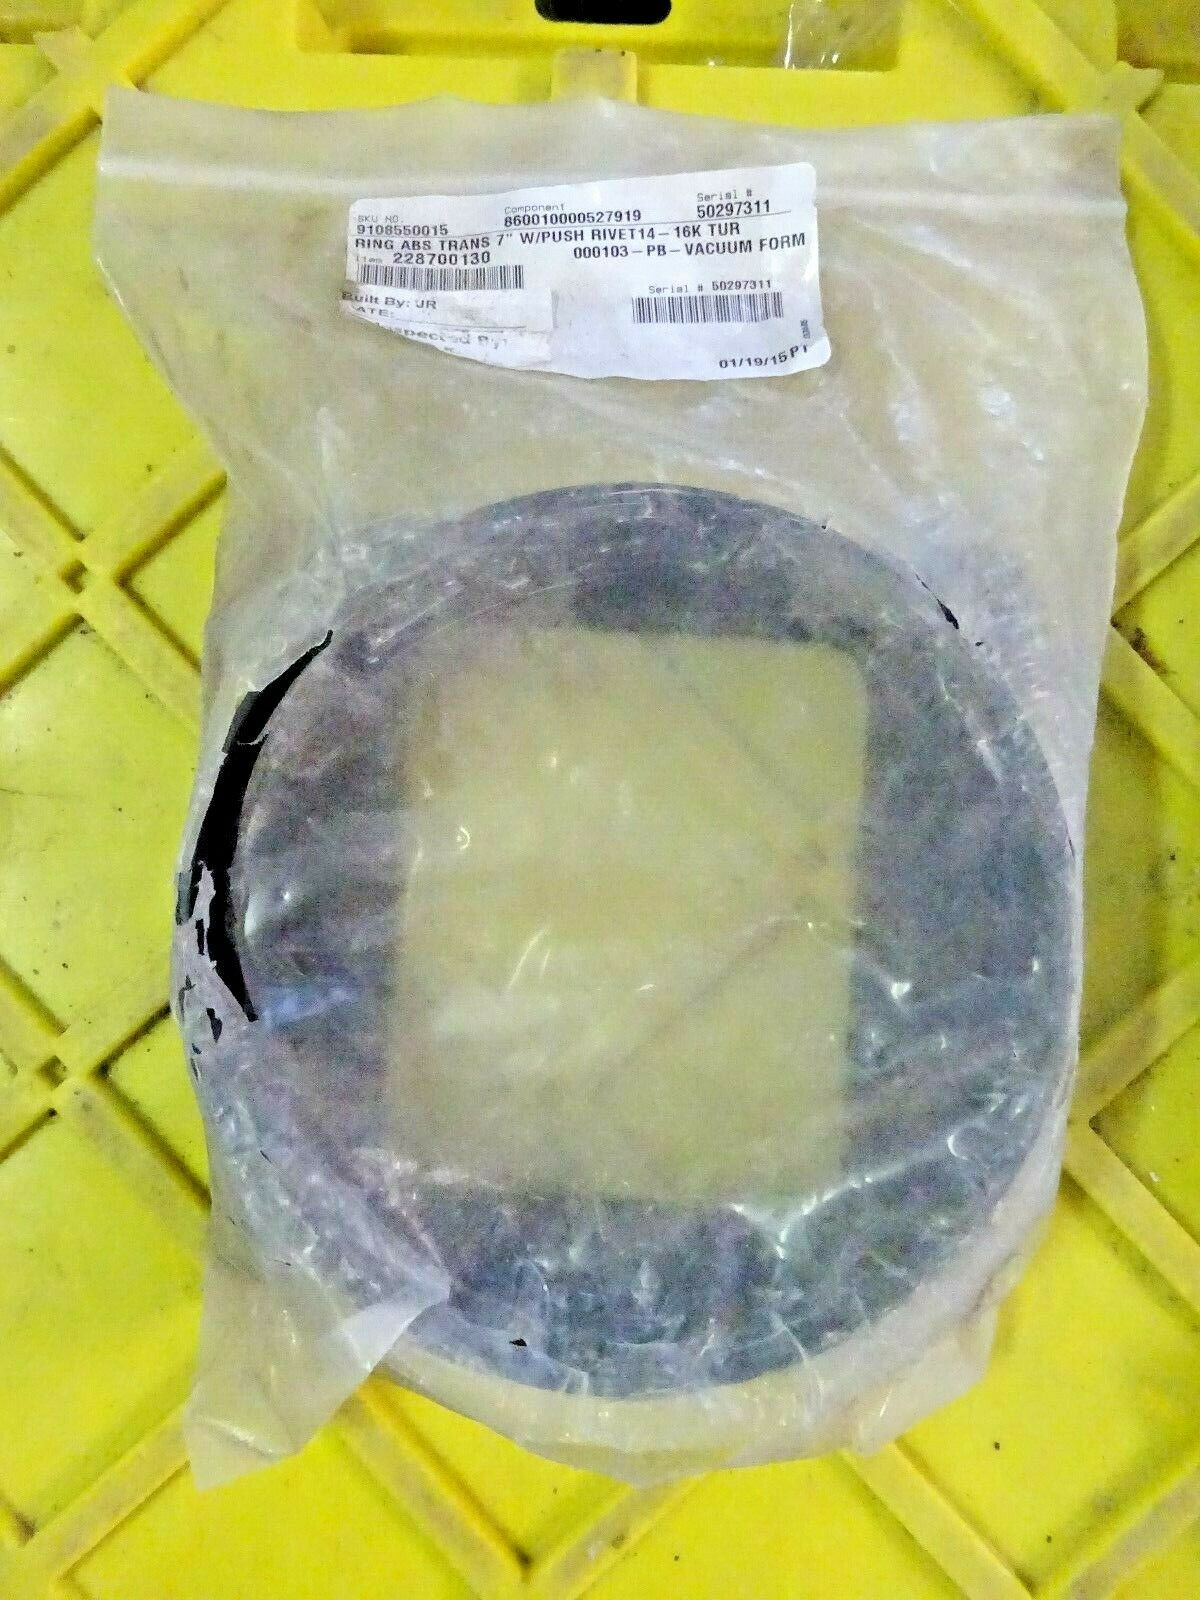 "DOMETIC 228700130 AC DUCT TRANSITION RING 7"" NEW IN BG 9108550015 OLD INV"